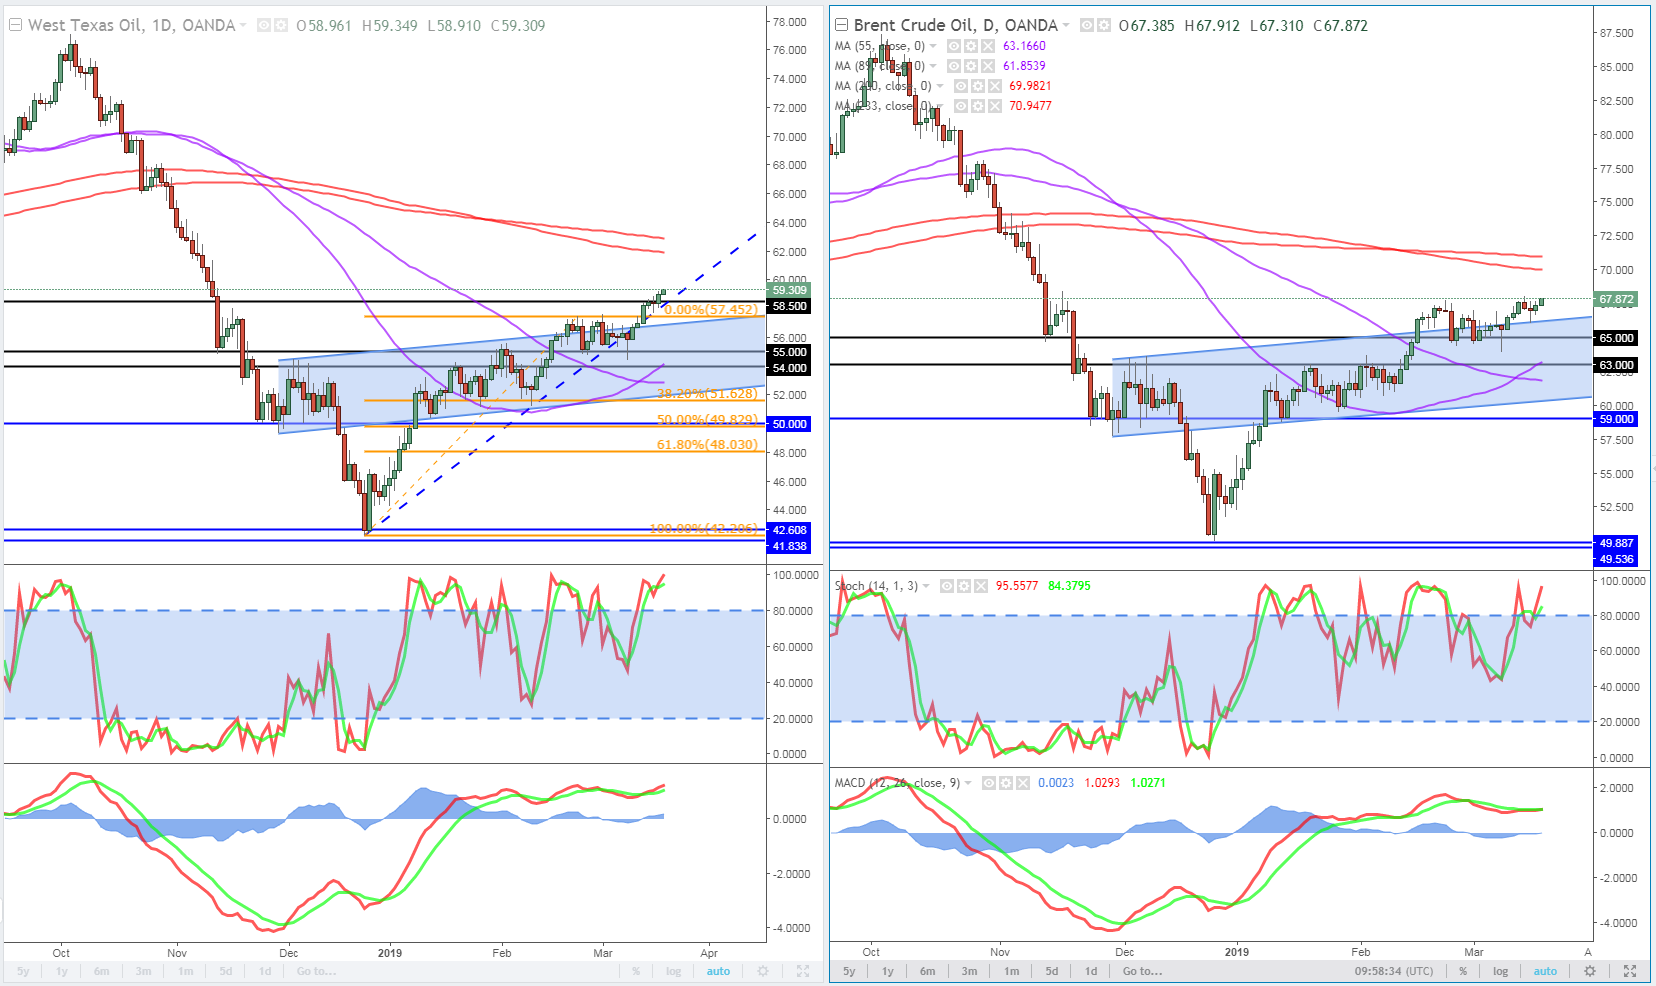 Oil (WTI and Brent) Daily Chart